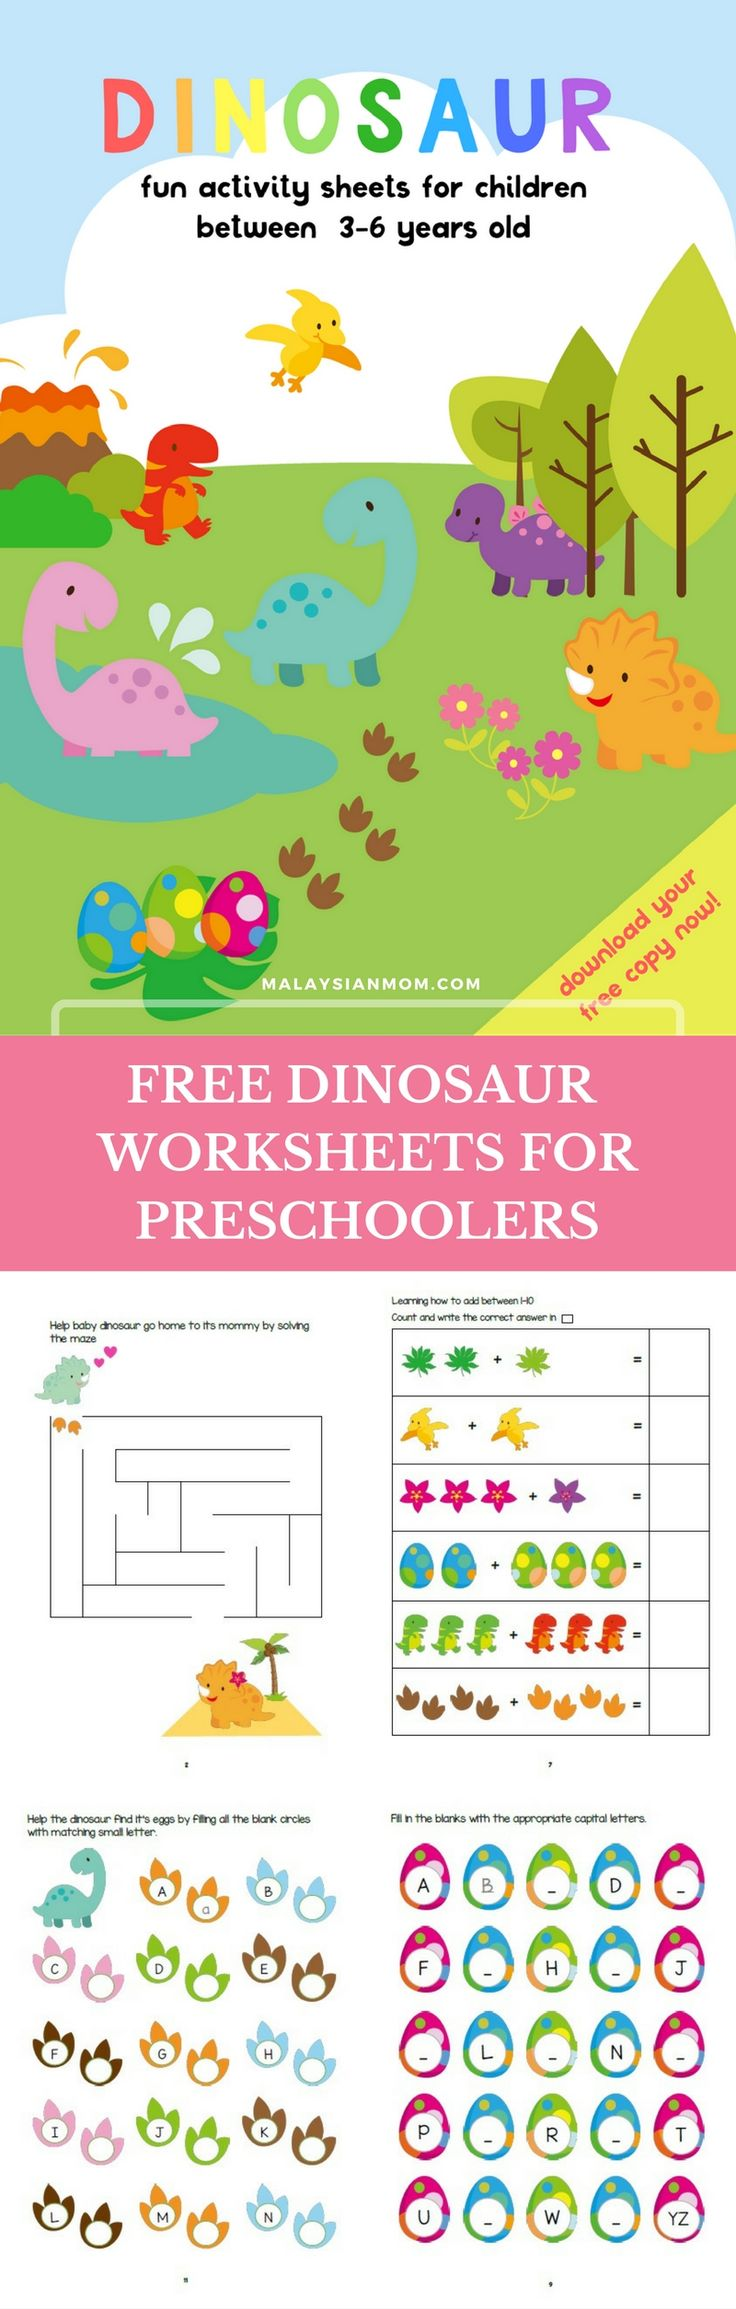 Worksheets Mathcounts Worksheets best 25 printable maths worksheets ideas on pinterest dinosaur preschool printables activities for kindergarten party theme diy cute